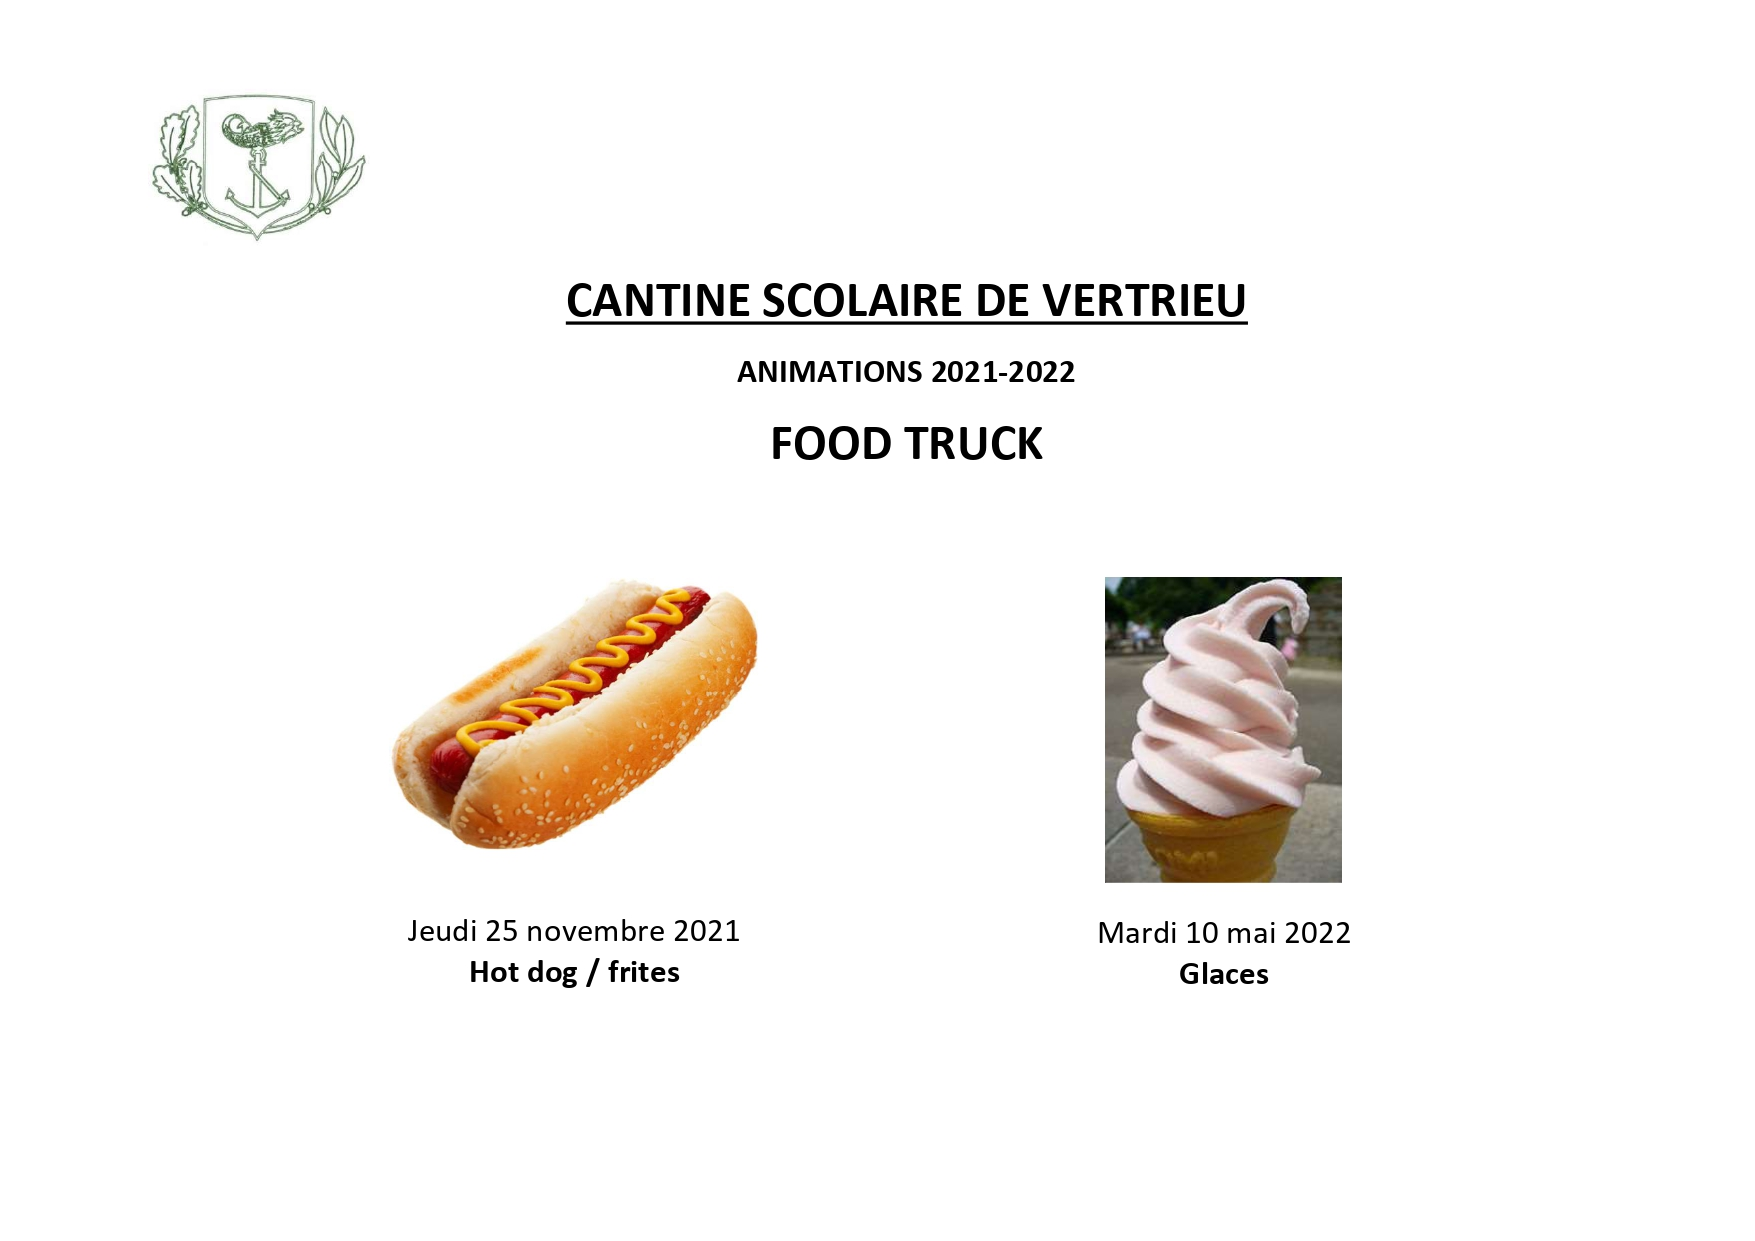 ANIMATIONS FOOD TRUCK 2021-2022_page-0001.jpg